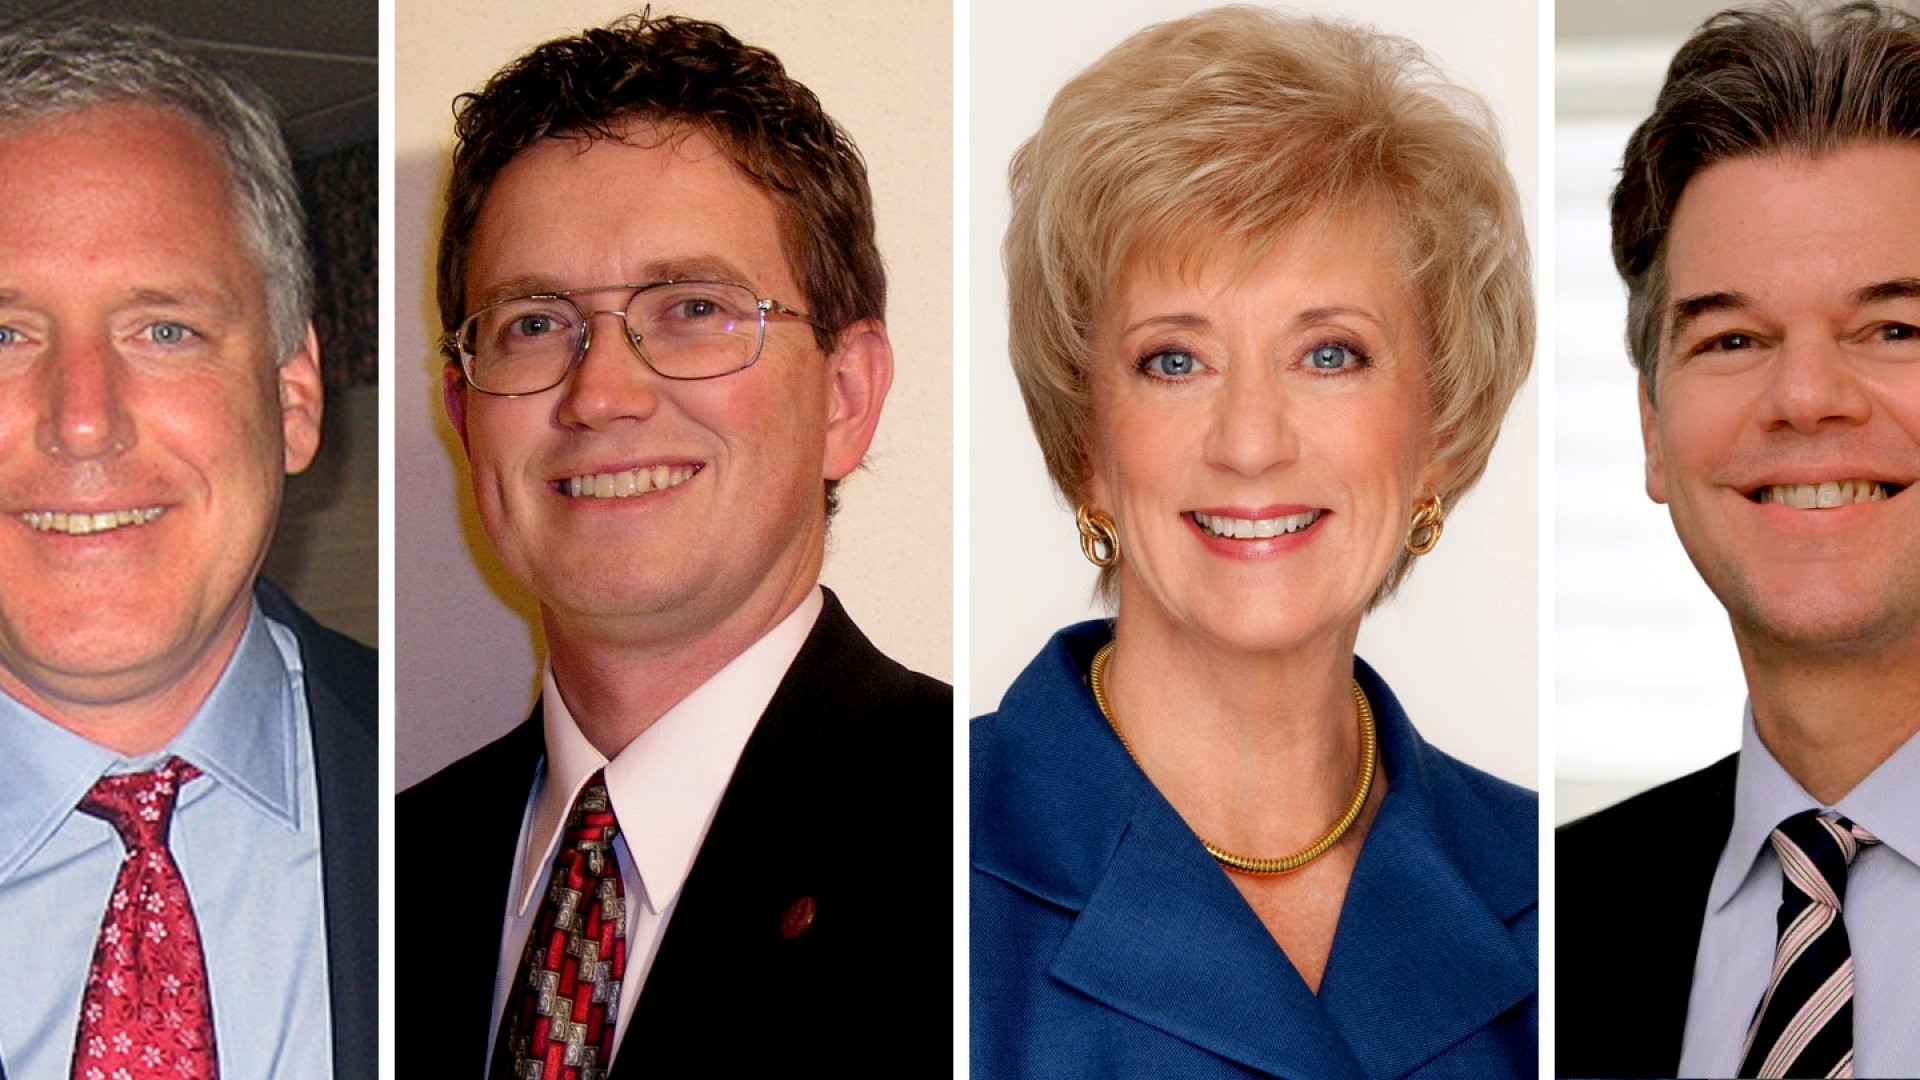 These candidates mean business: John Dennis, Thomas Massie, Linda McMahon, and Jim Graves, left to right.